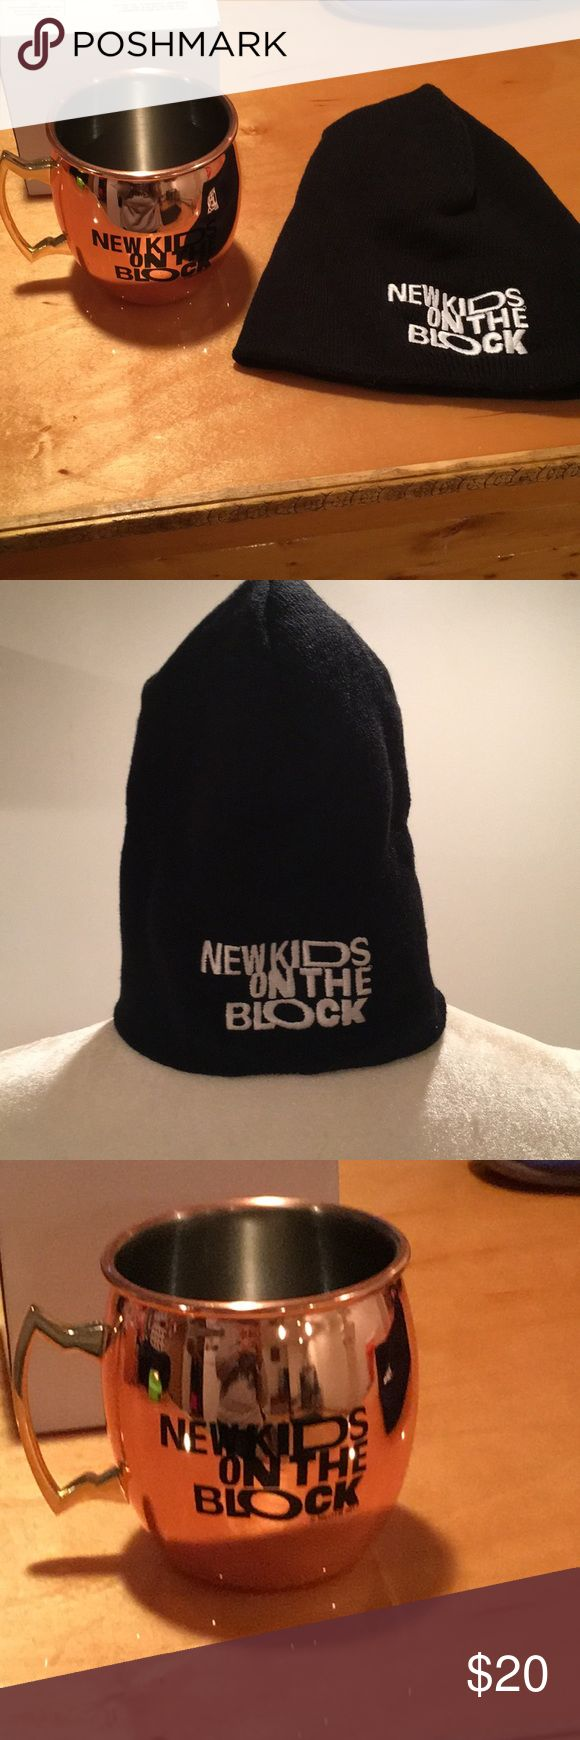 NWT NKOTB Moscow mule cup and hat NWT NKOTB new kids on the block  Moscow mule cup and knot winter hat.  Never used either.  Received for being part of the fan club From a smoke free home Accessories Hats